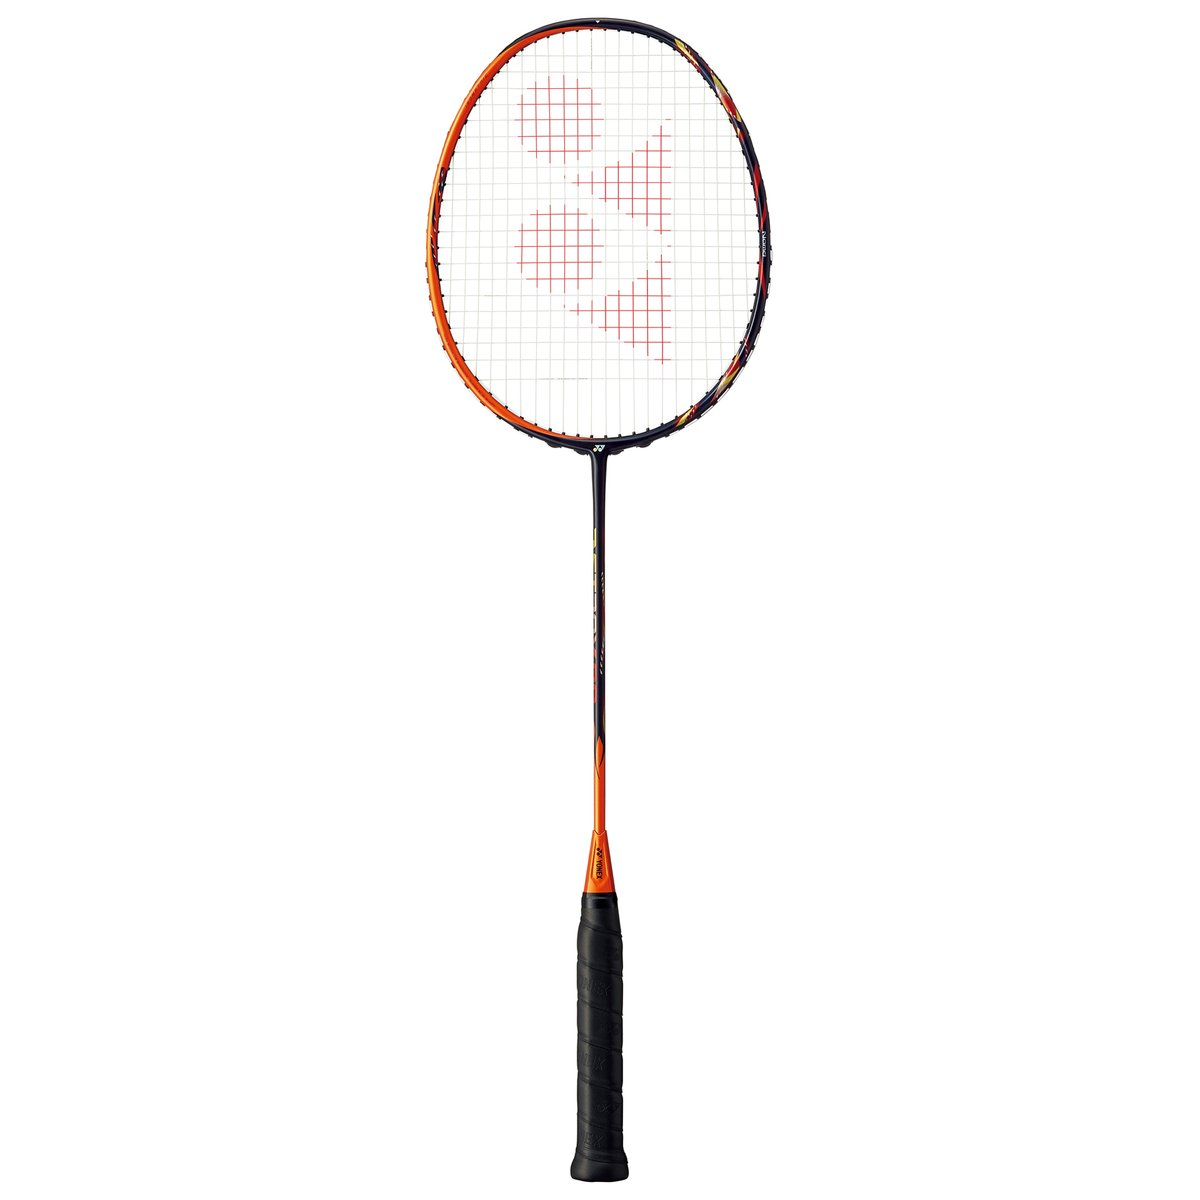 Yonex Astrox 99 Sunshine Orange Badminton Racket